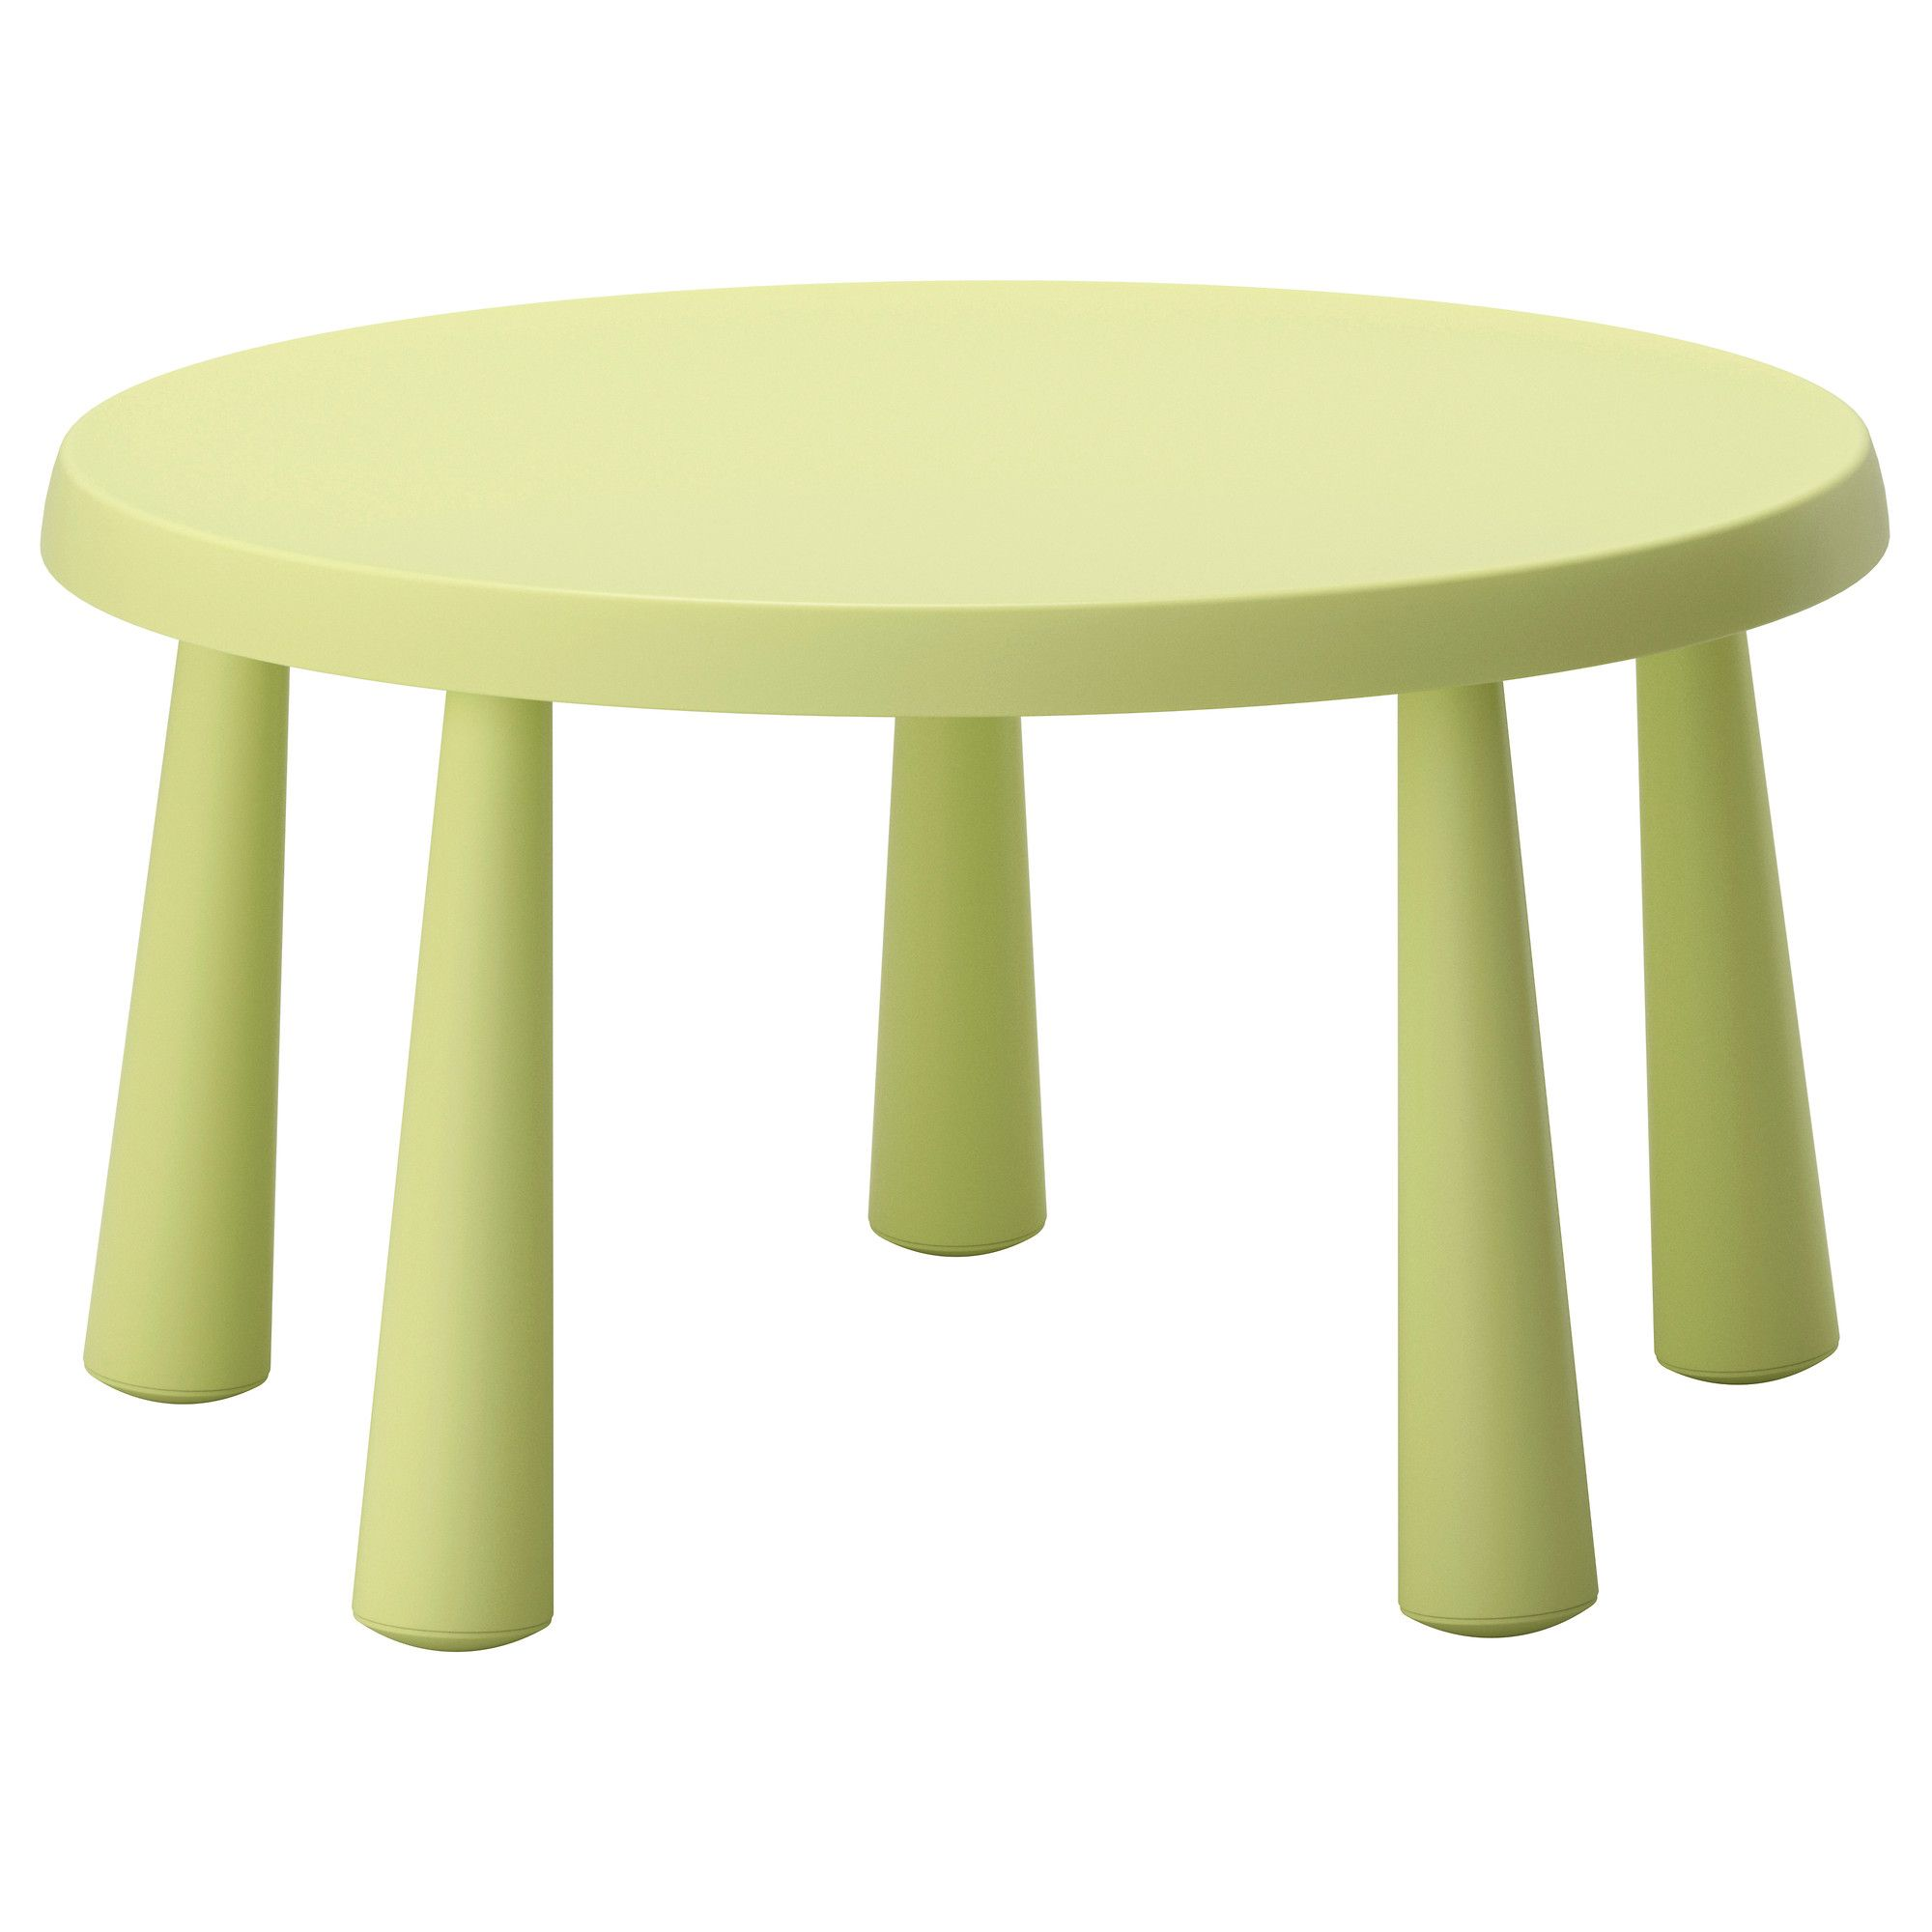 Ikea Us Furniture And Home Furnishings Ikea Kids Table Ikea